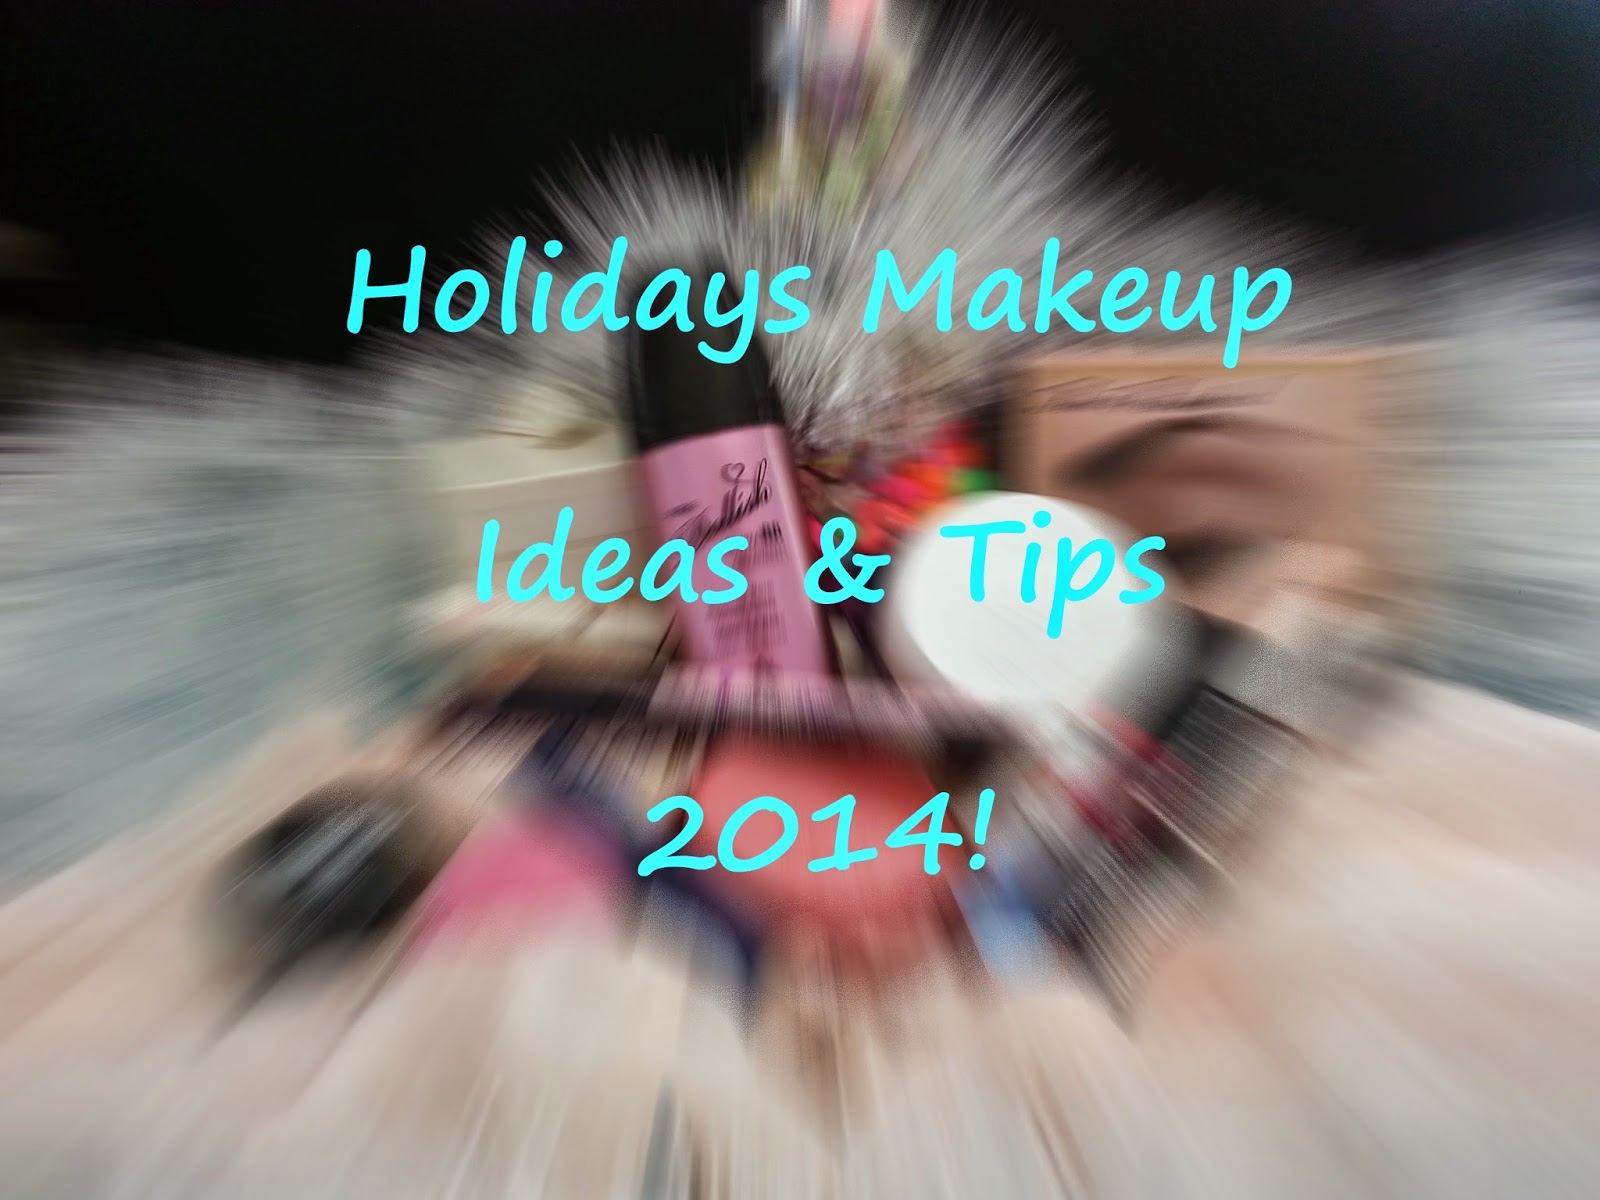 Holidau makeup ideas and tips for 2014